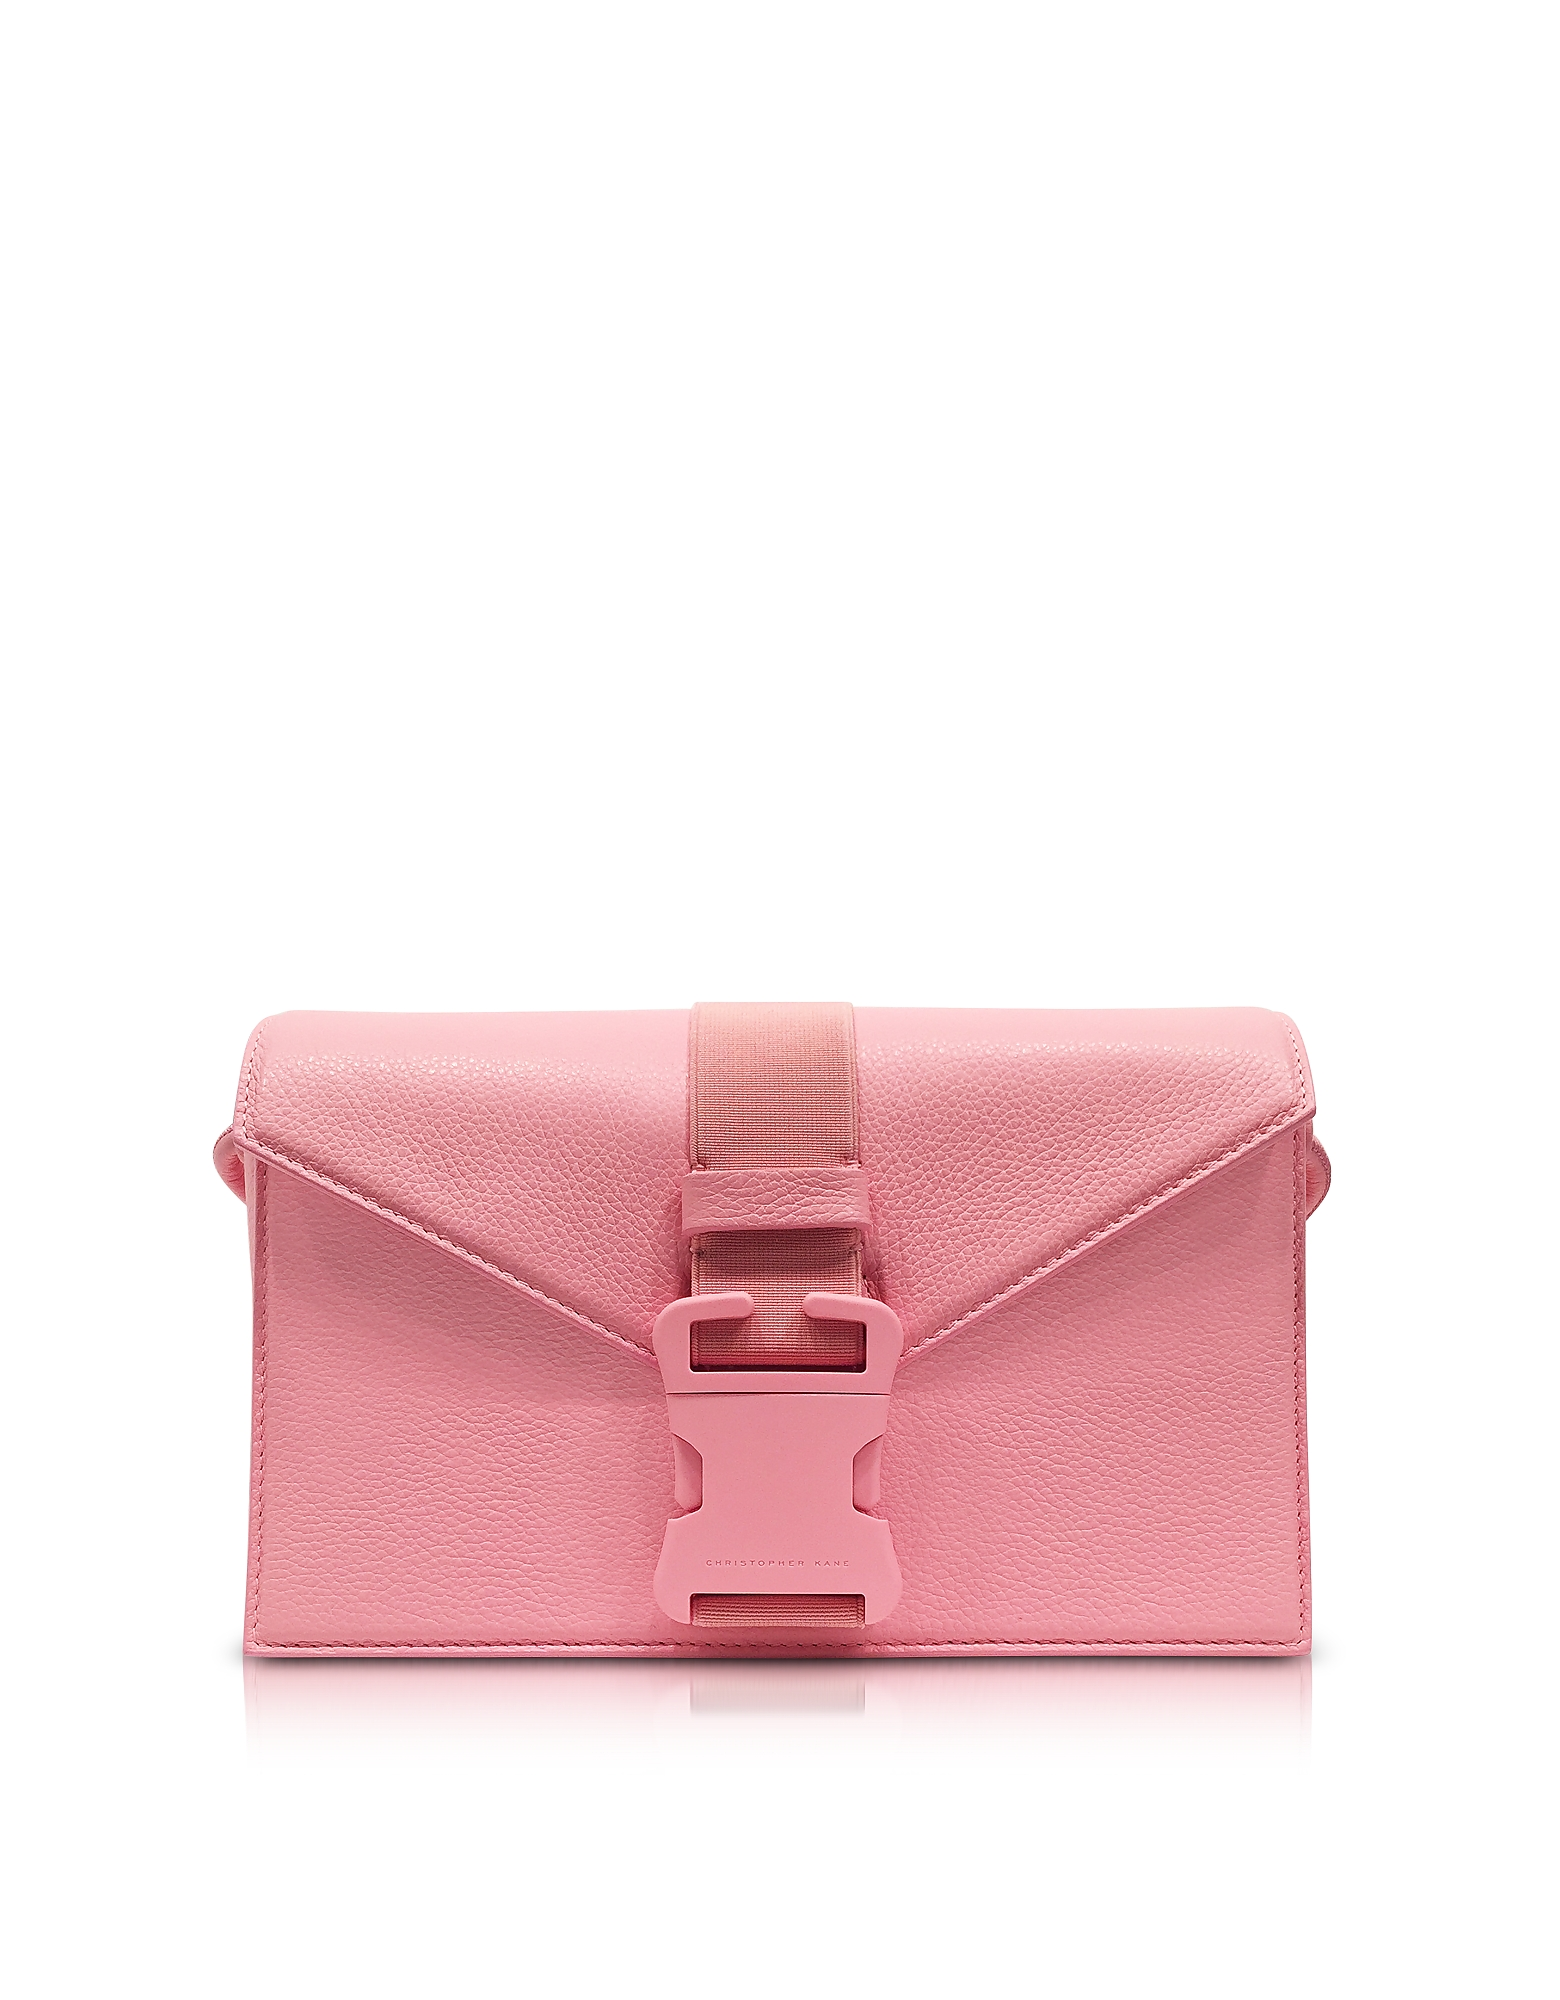 Christopher Kane Handbags, Venus Pink Grained Leather Devine Og Bag